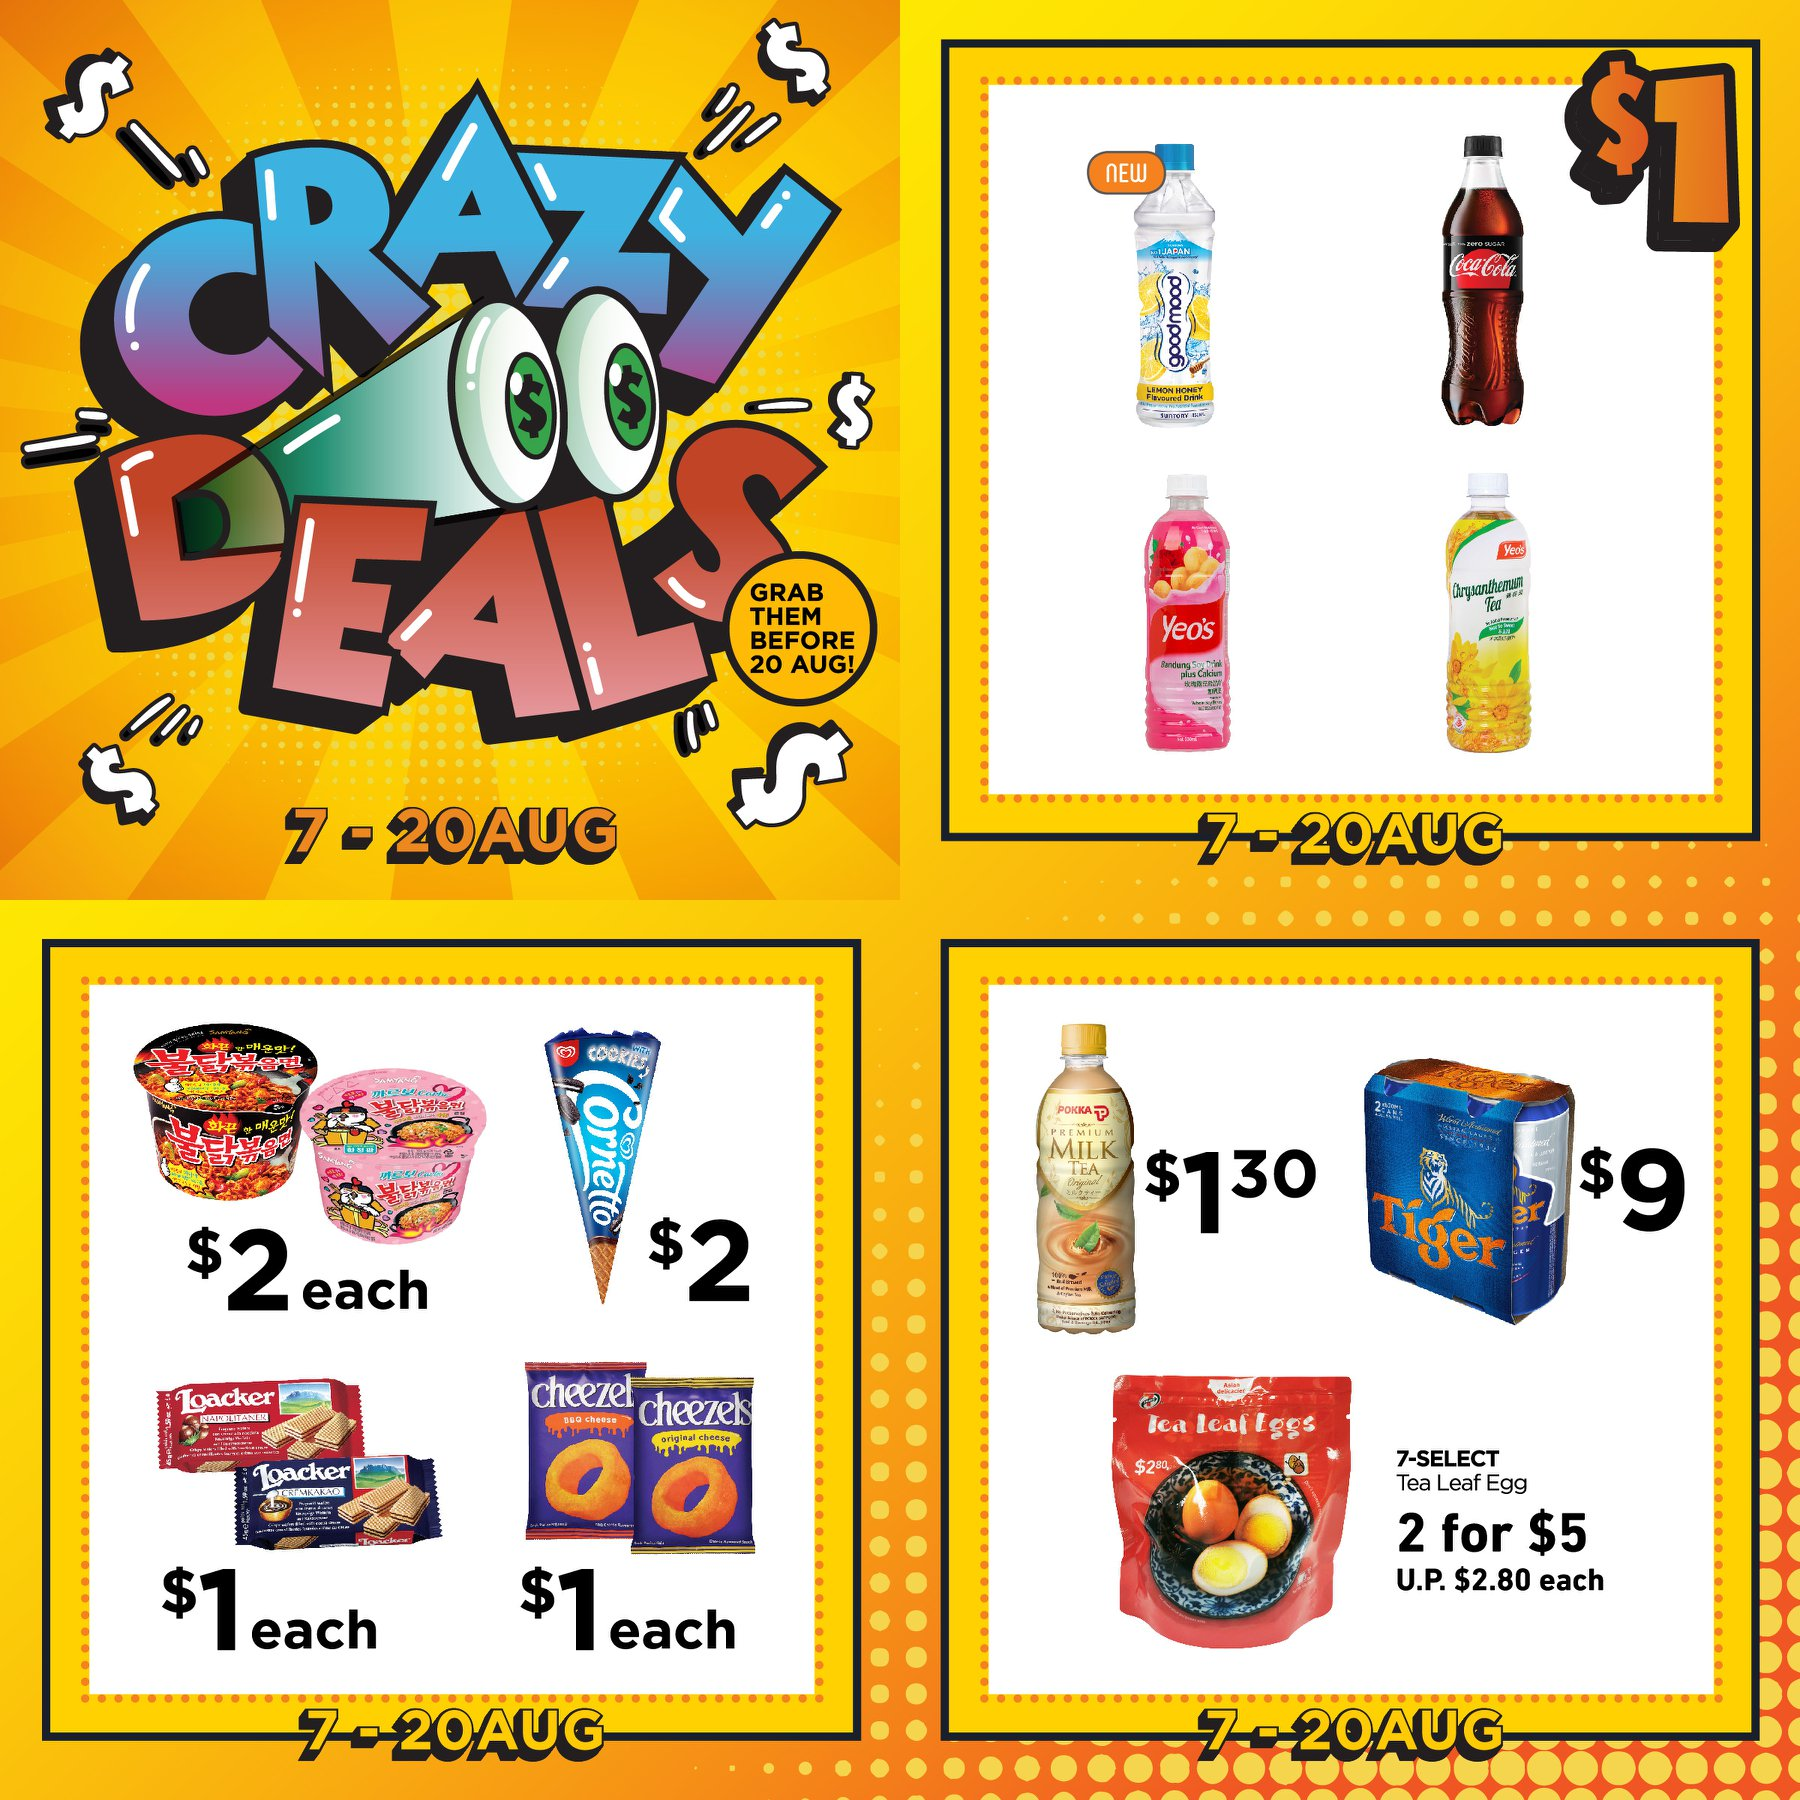 7-Eleven Singapore Crazy Deals as low as $1 Promotion 7-20 Aug 2019 | Why Not Deals & Promotions